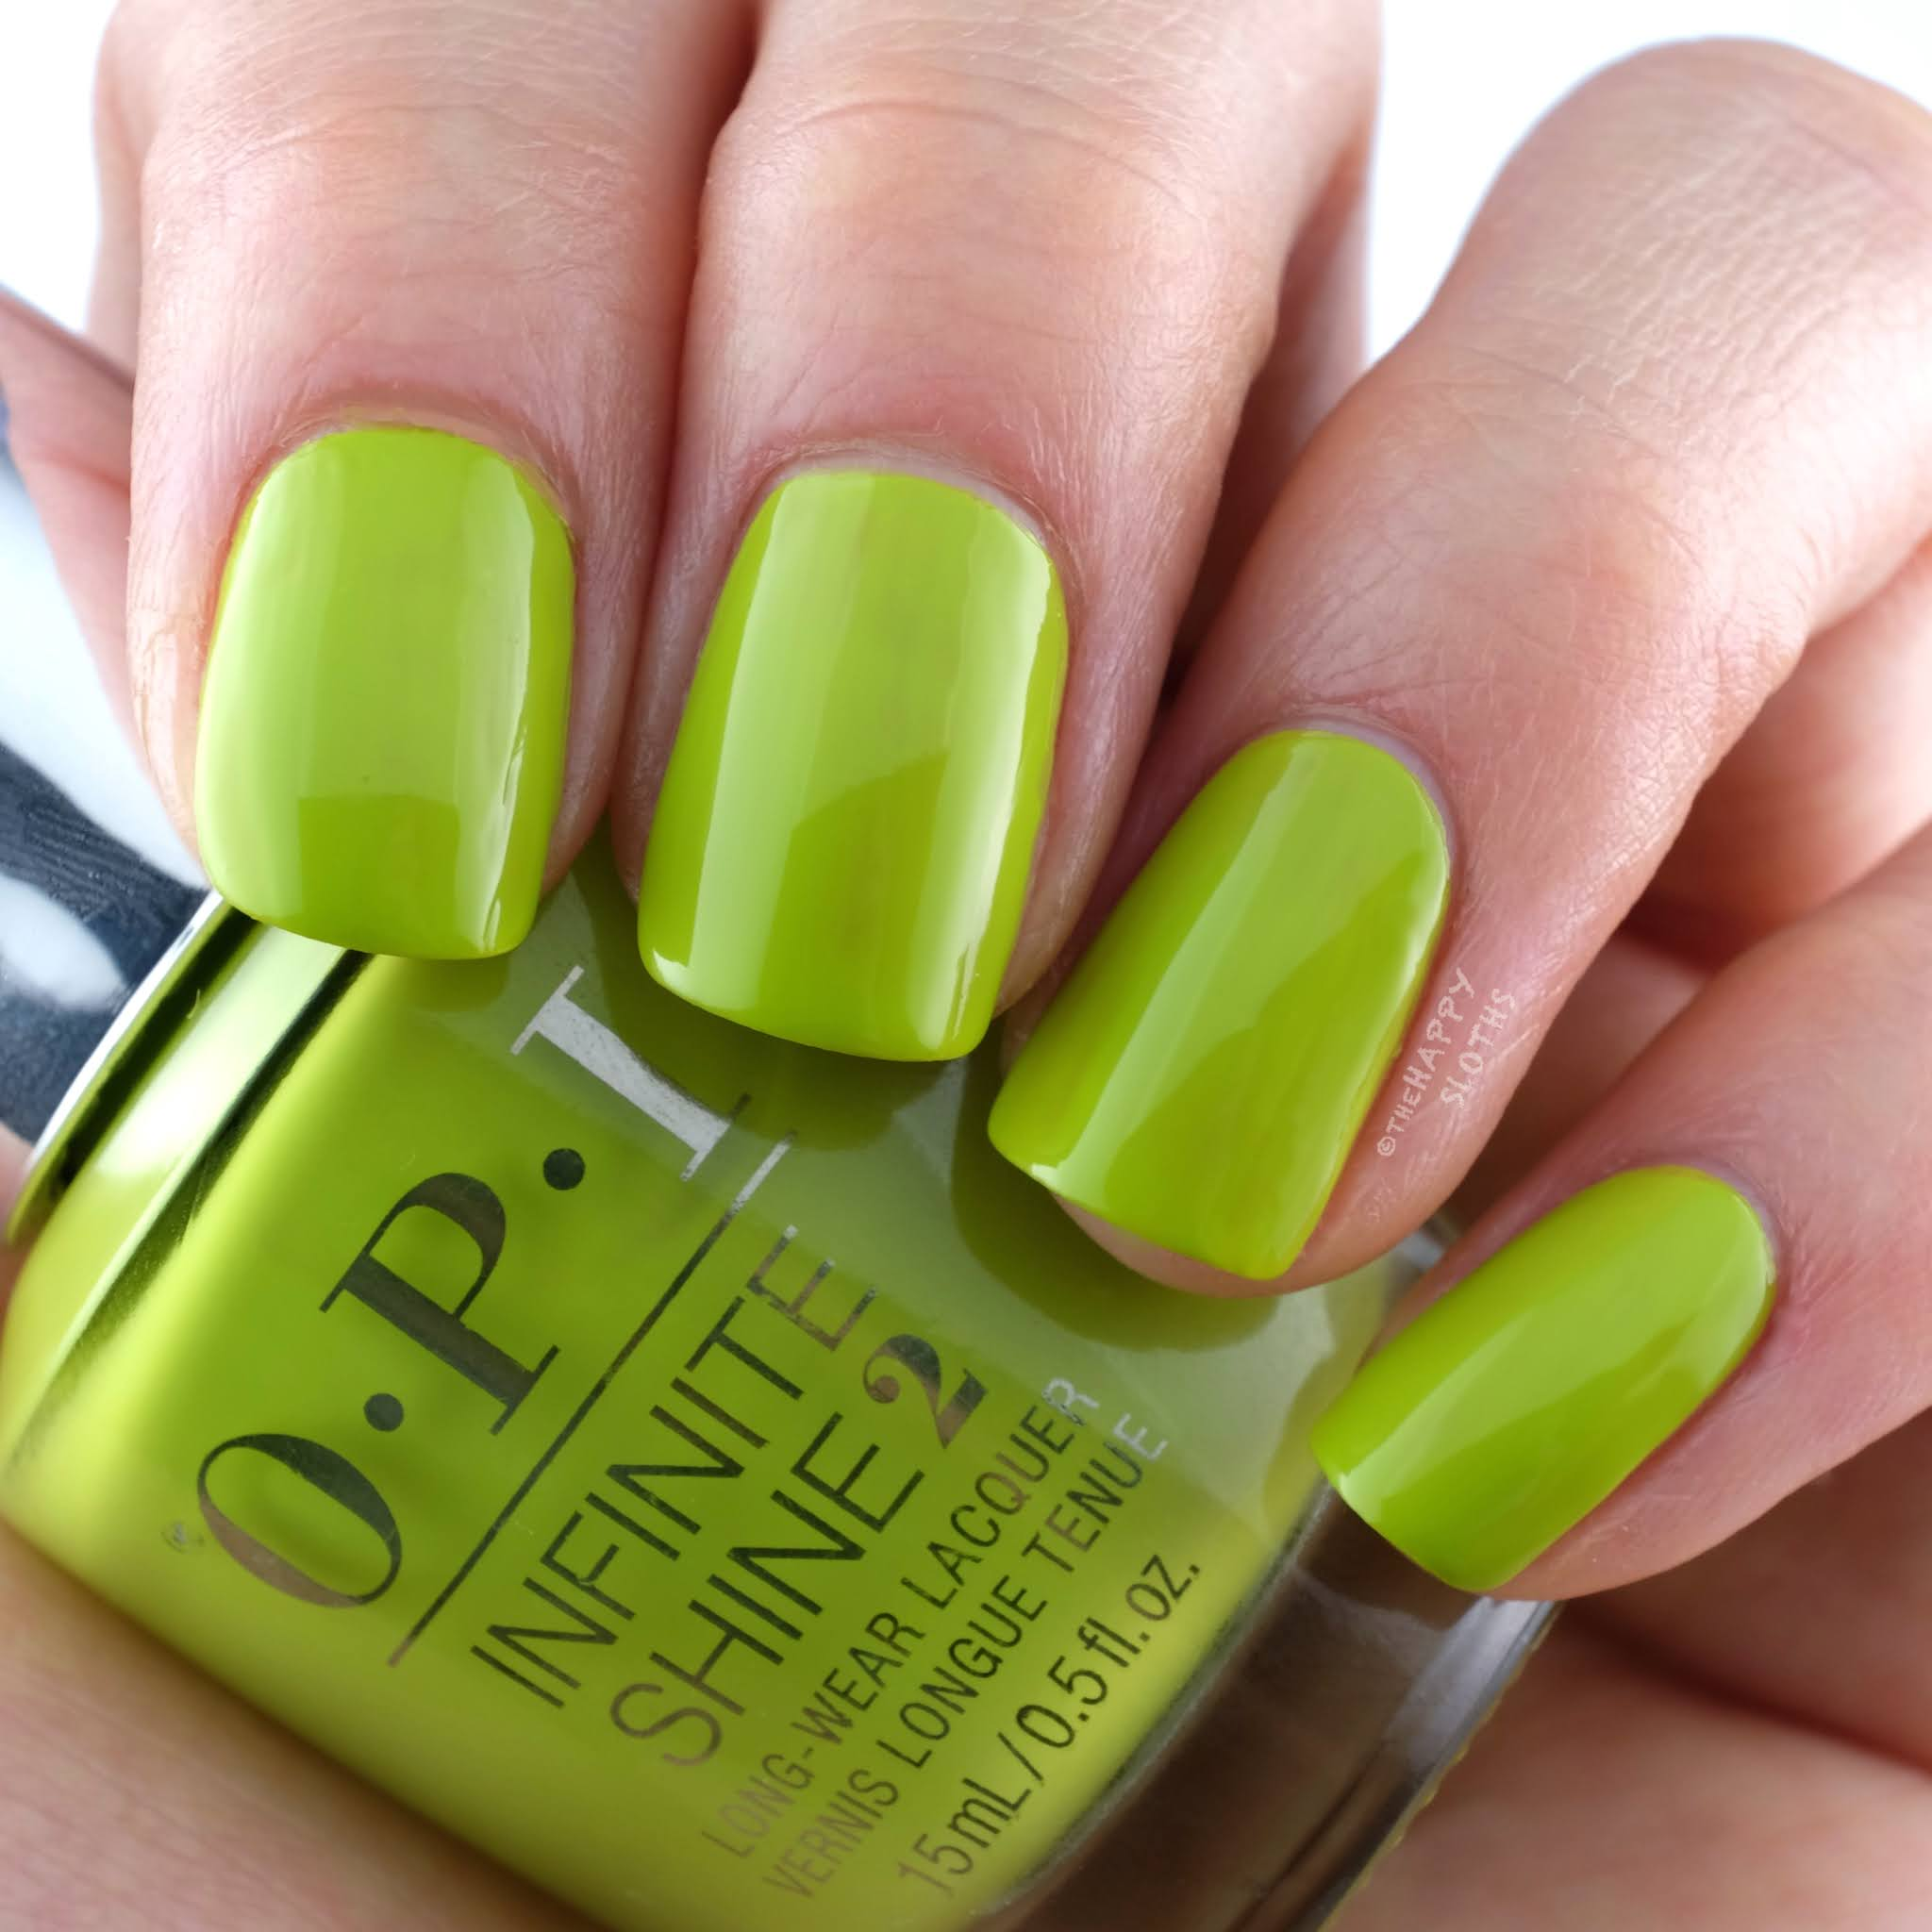 OPI Summer 2021 Malibu Collection   Pear-adise Cove: Review and Swatches